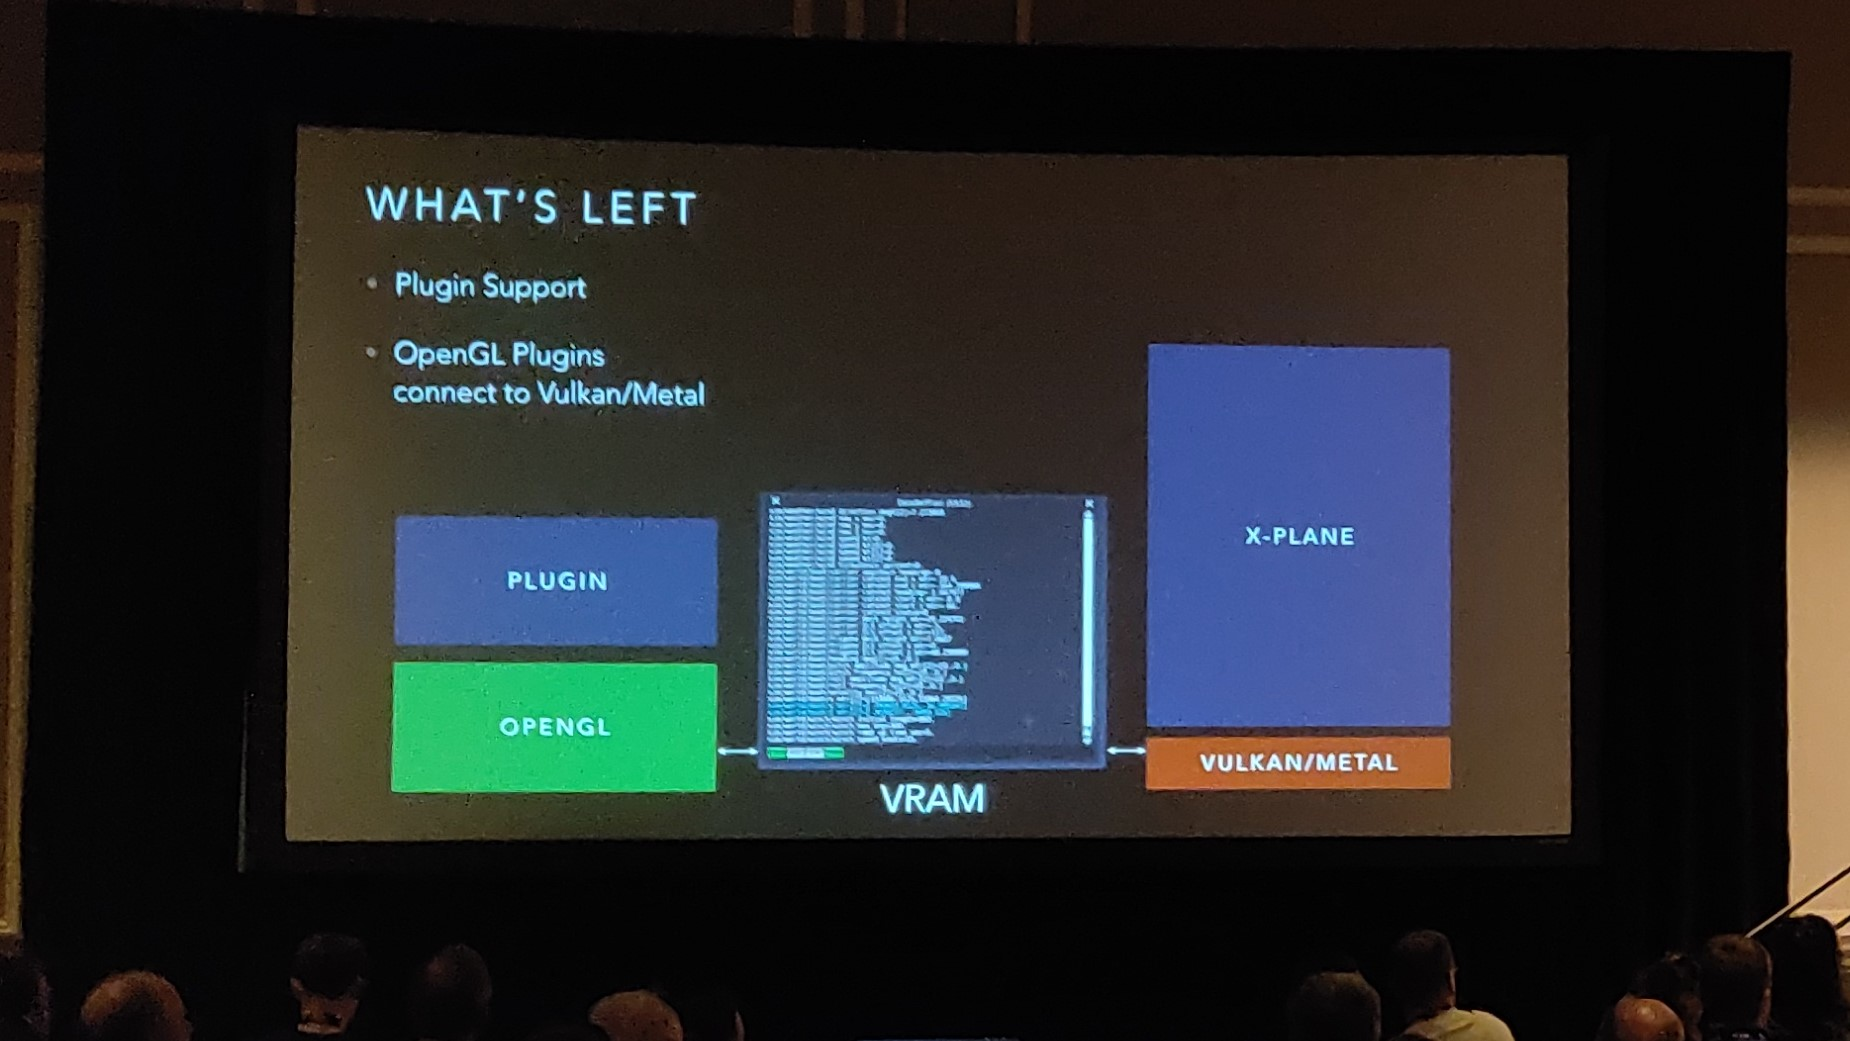 FSExpo 2019: Laminar Research - Vulkan/Metal